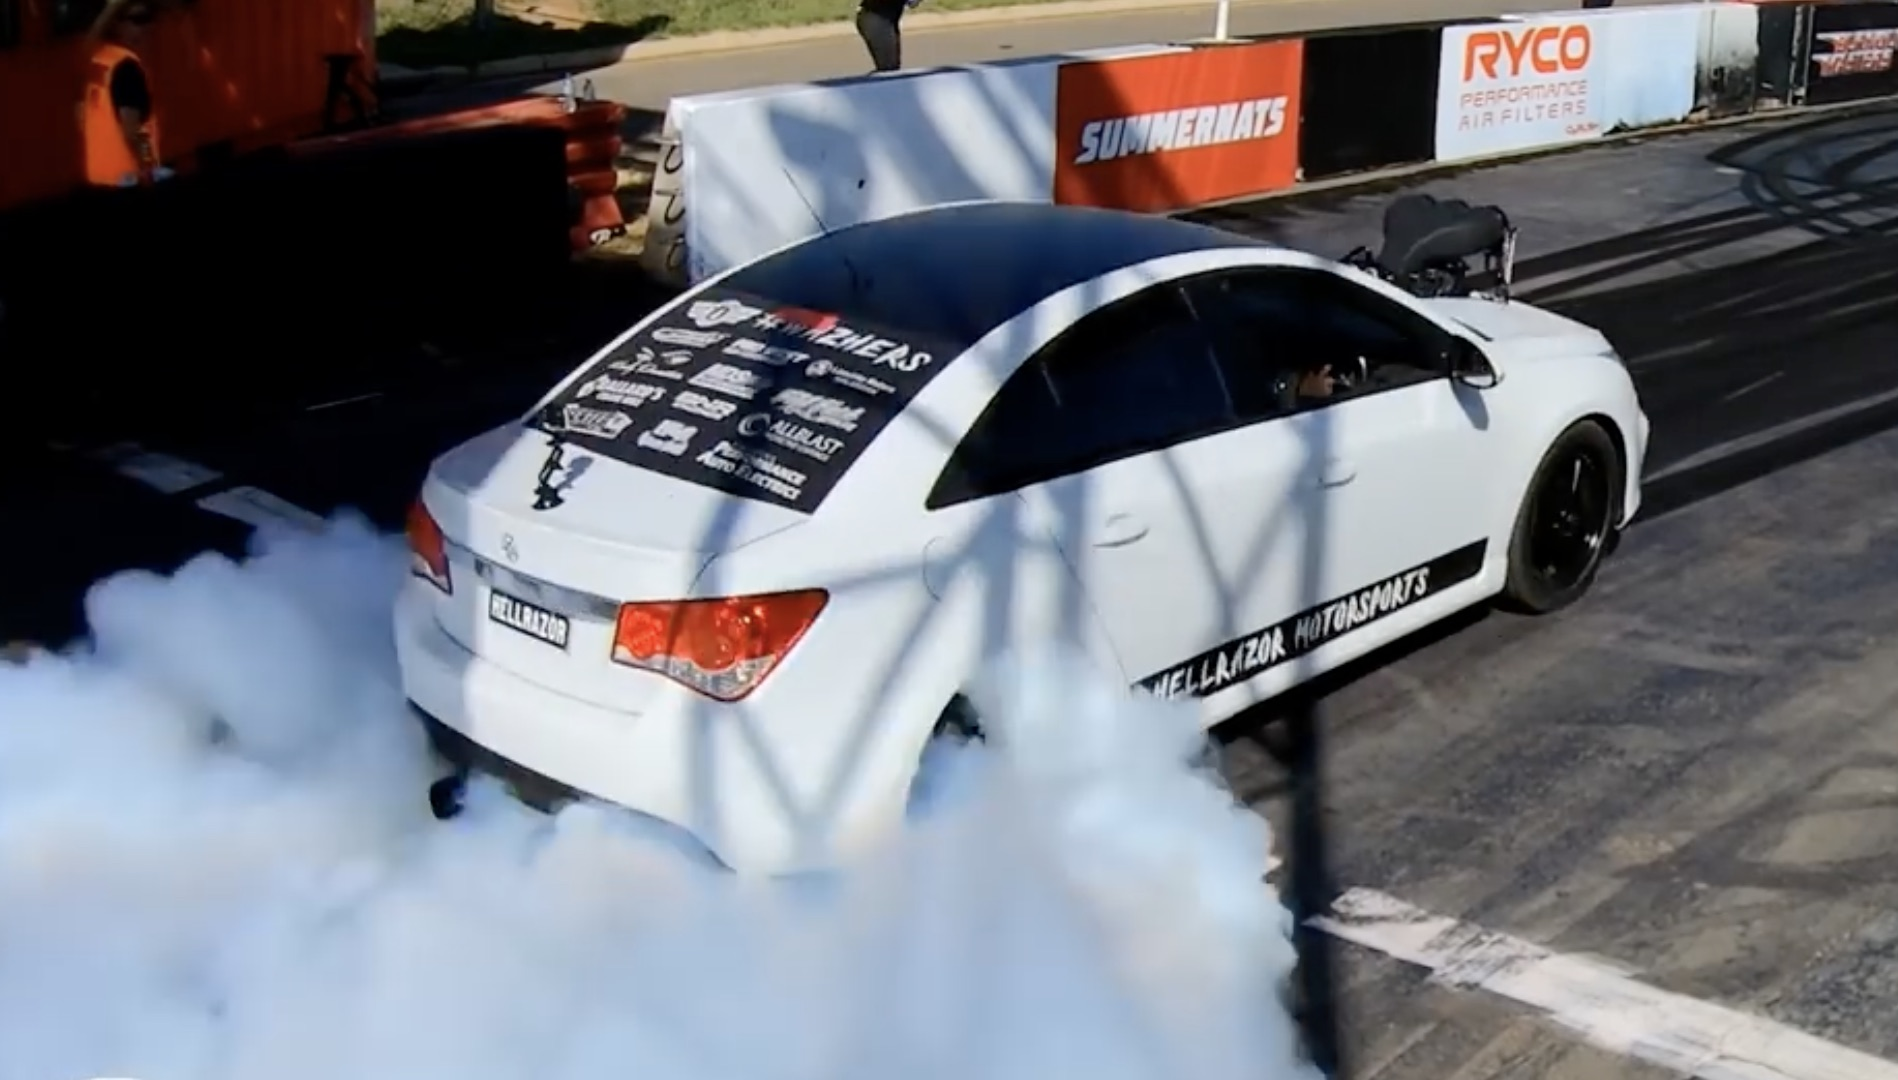 Never Would've Suspected: The World's Baddest Holden Cruze Burning Them Off At Summernats!